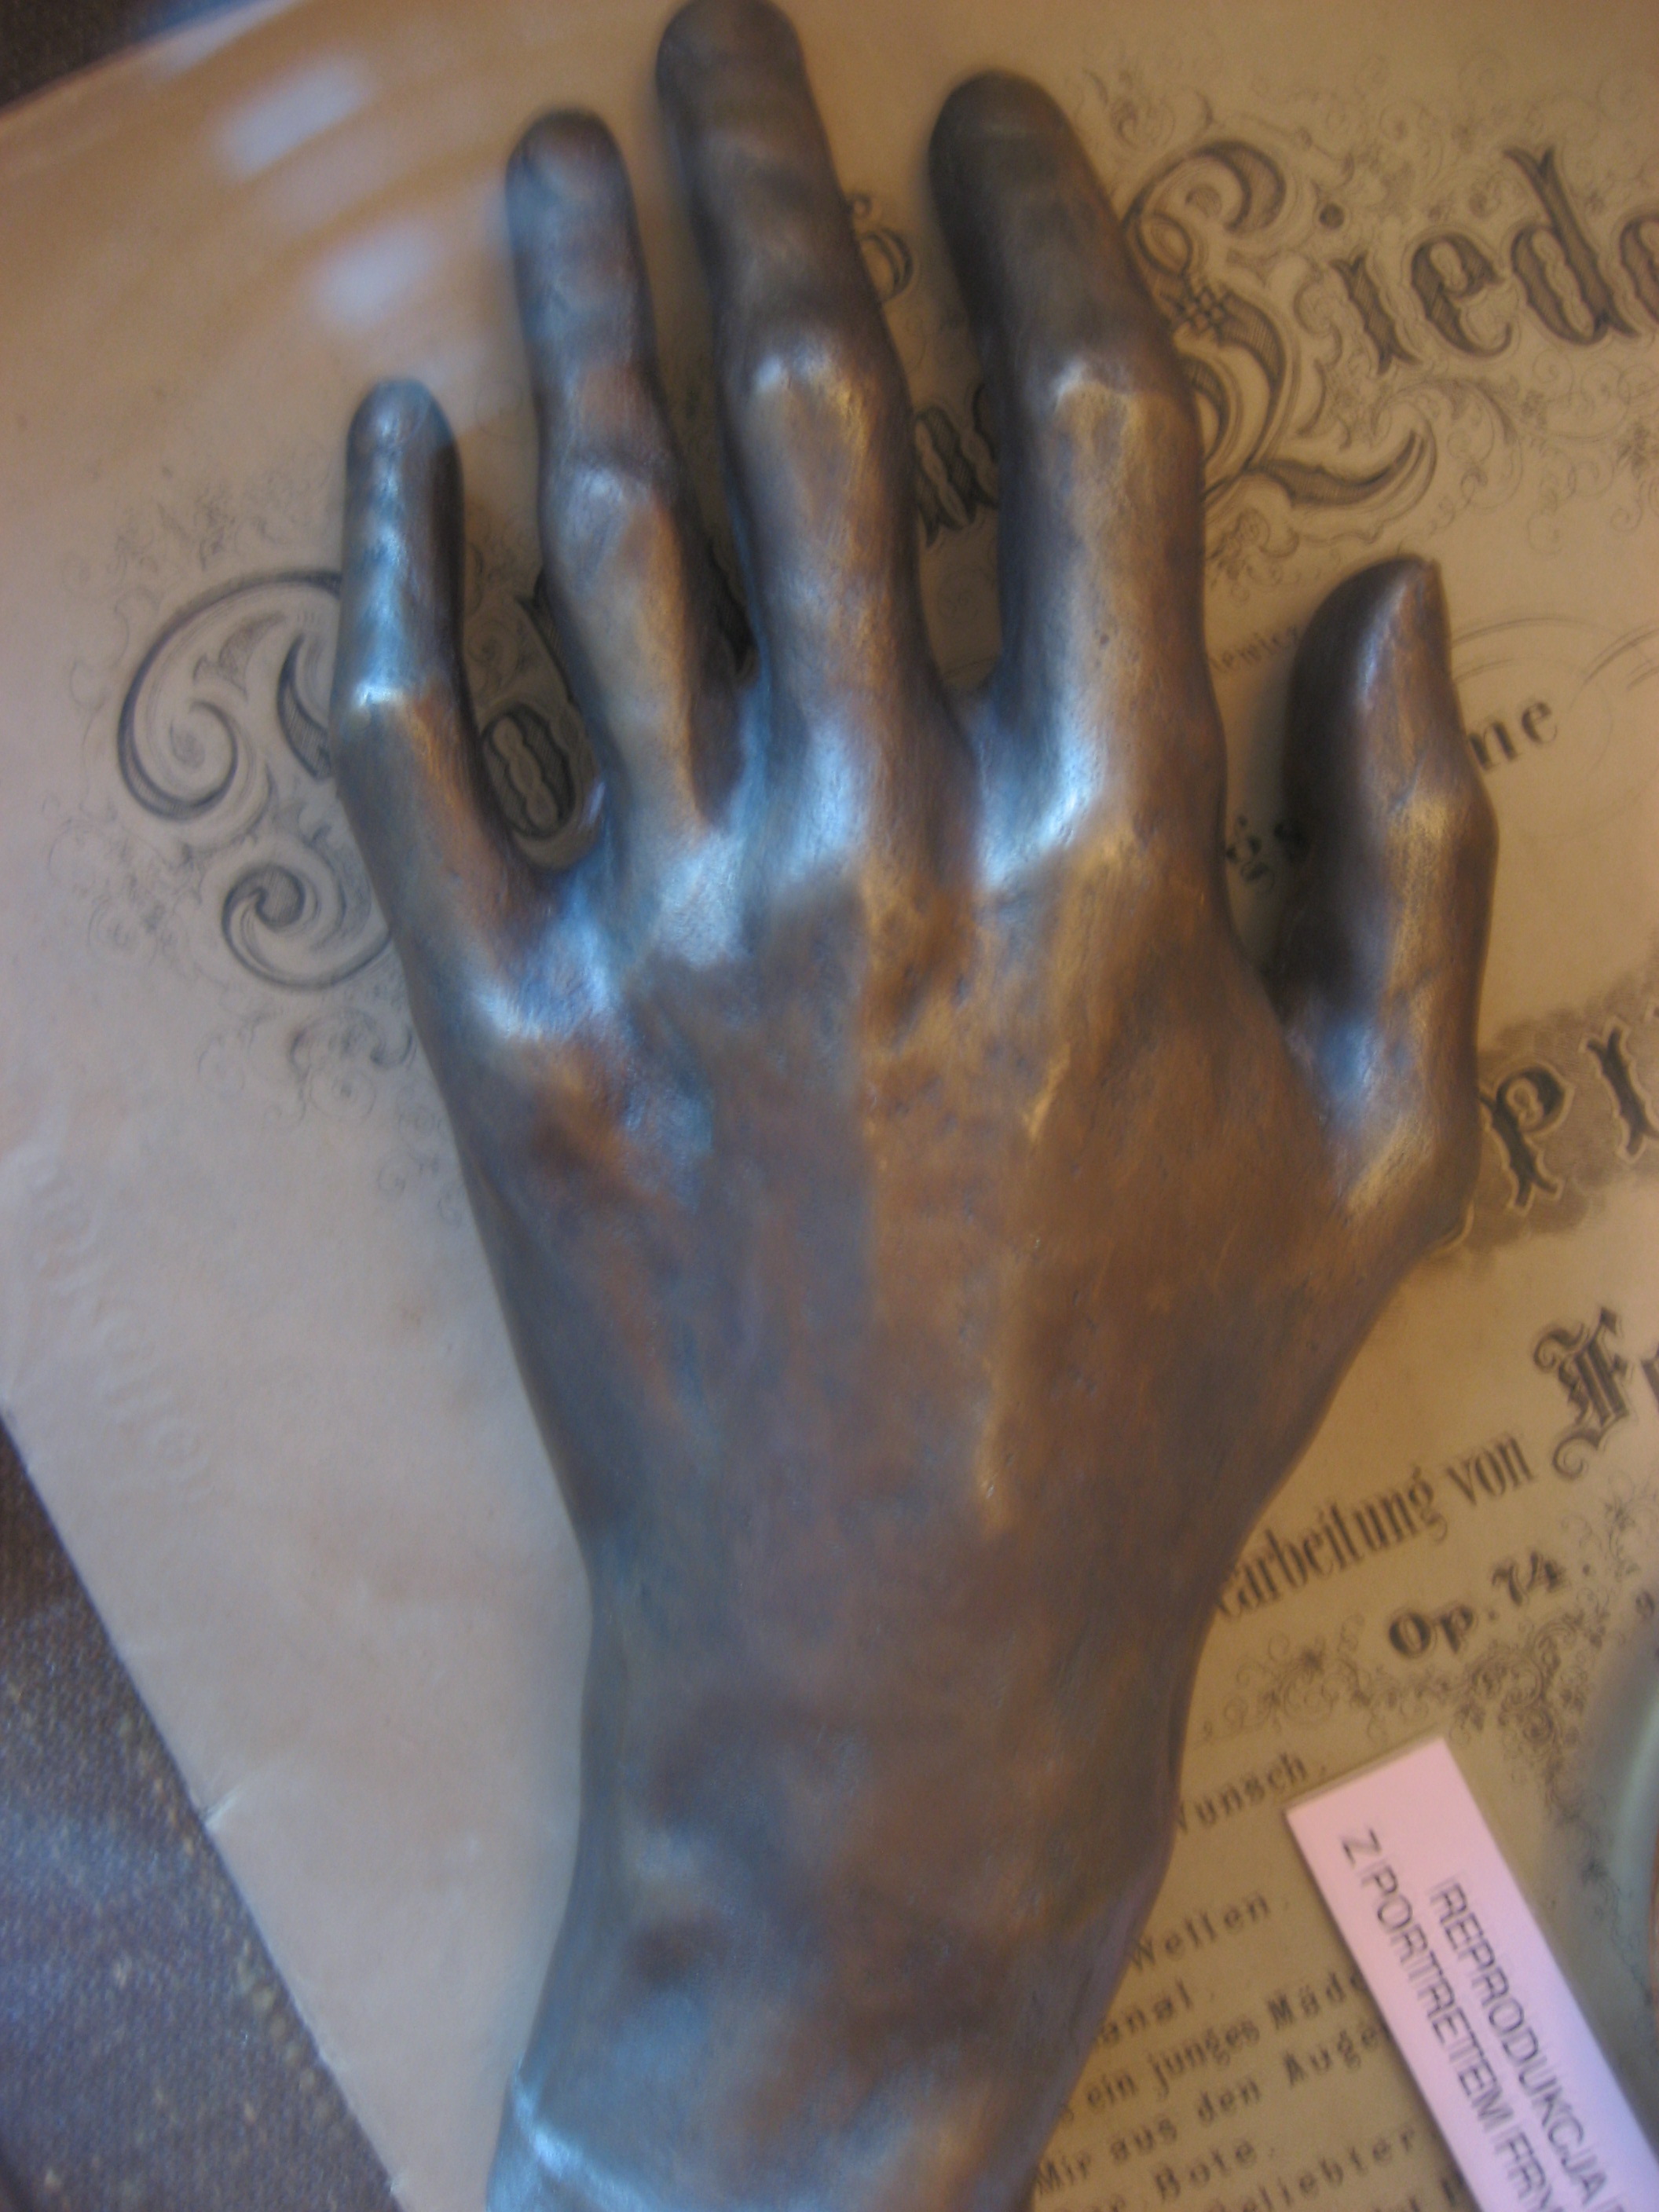 http://upload.wikimedia.org/wikipedia/commons/e/ed/Cast_of_Chopin%27s_hand.JPG